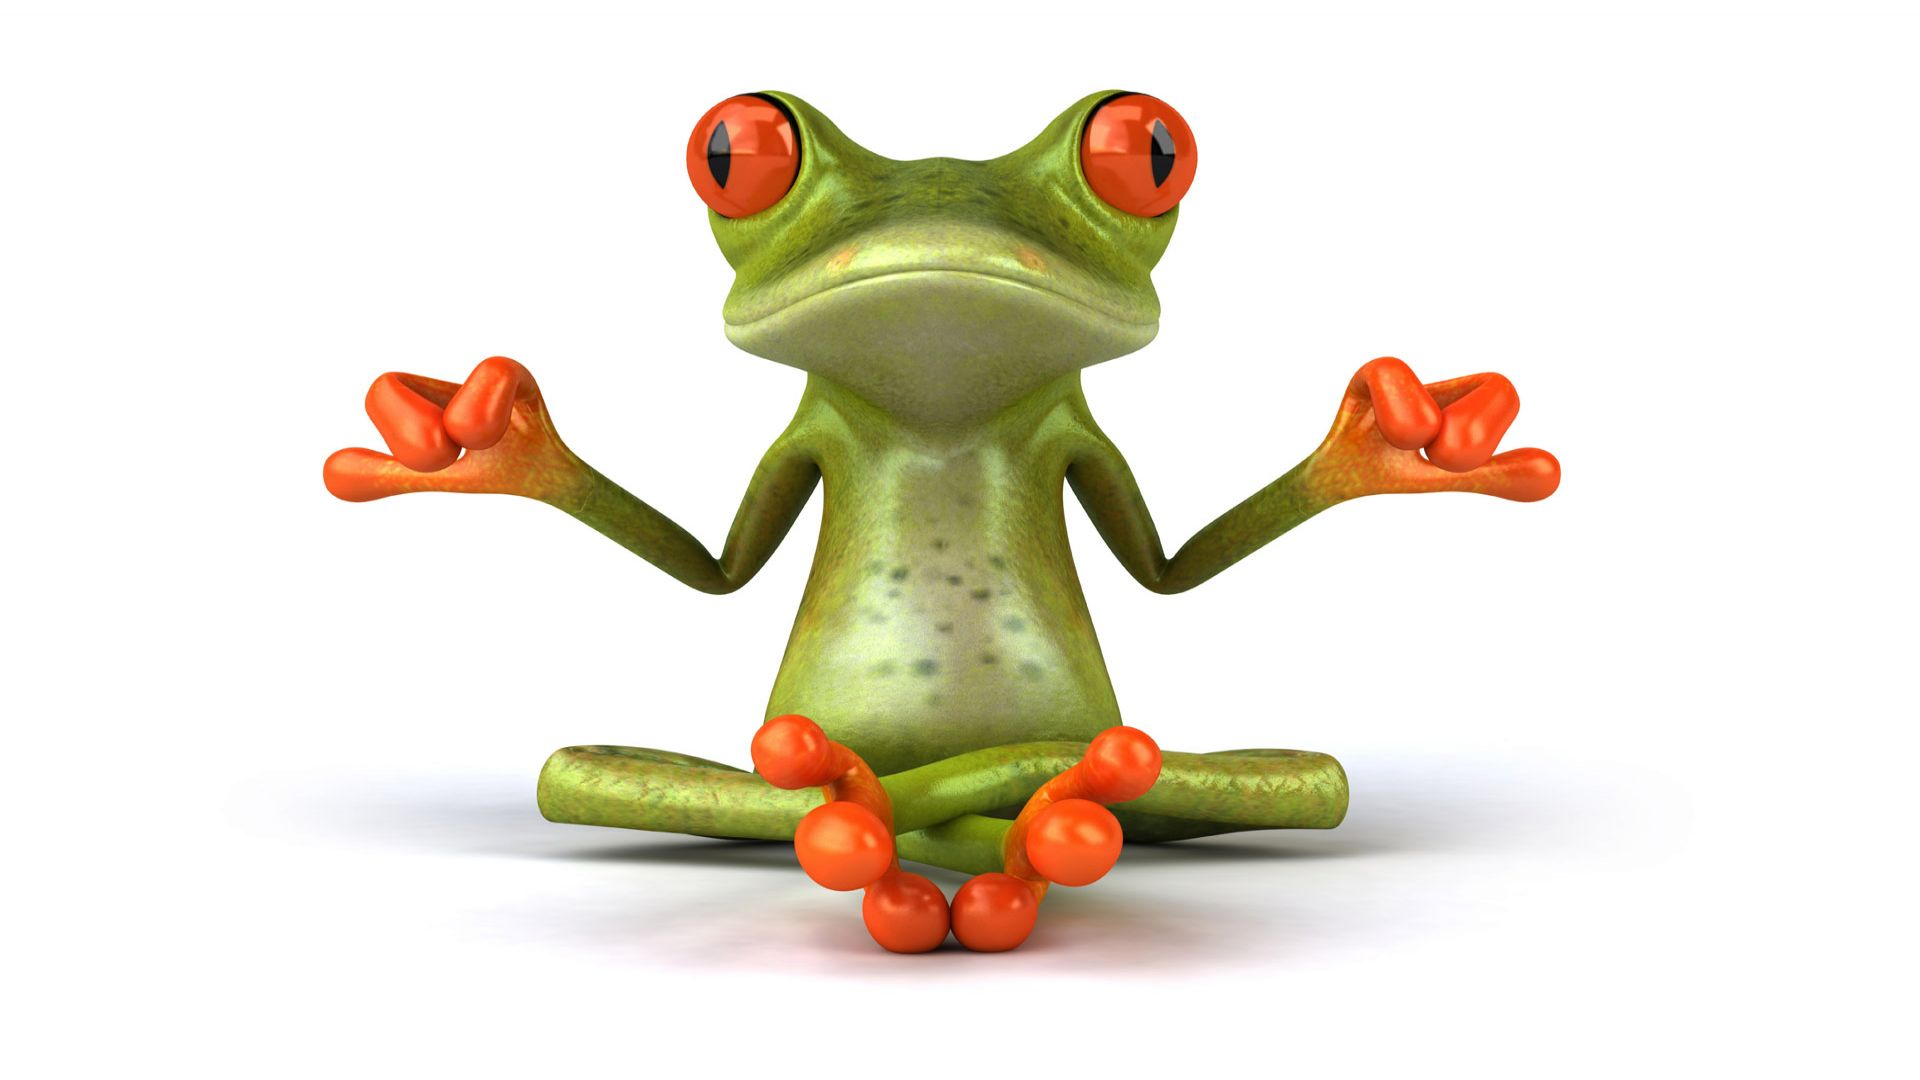 3D Frog Wallpaper Background